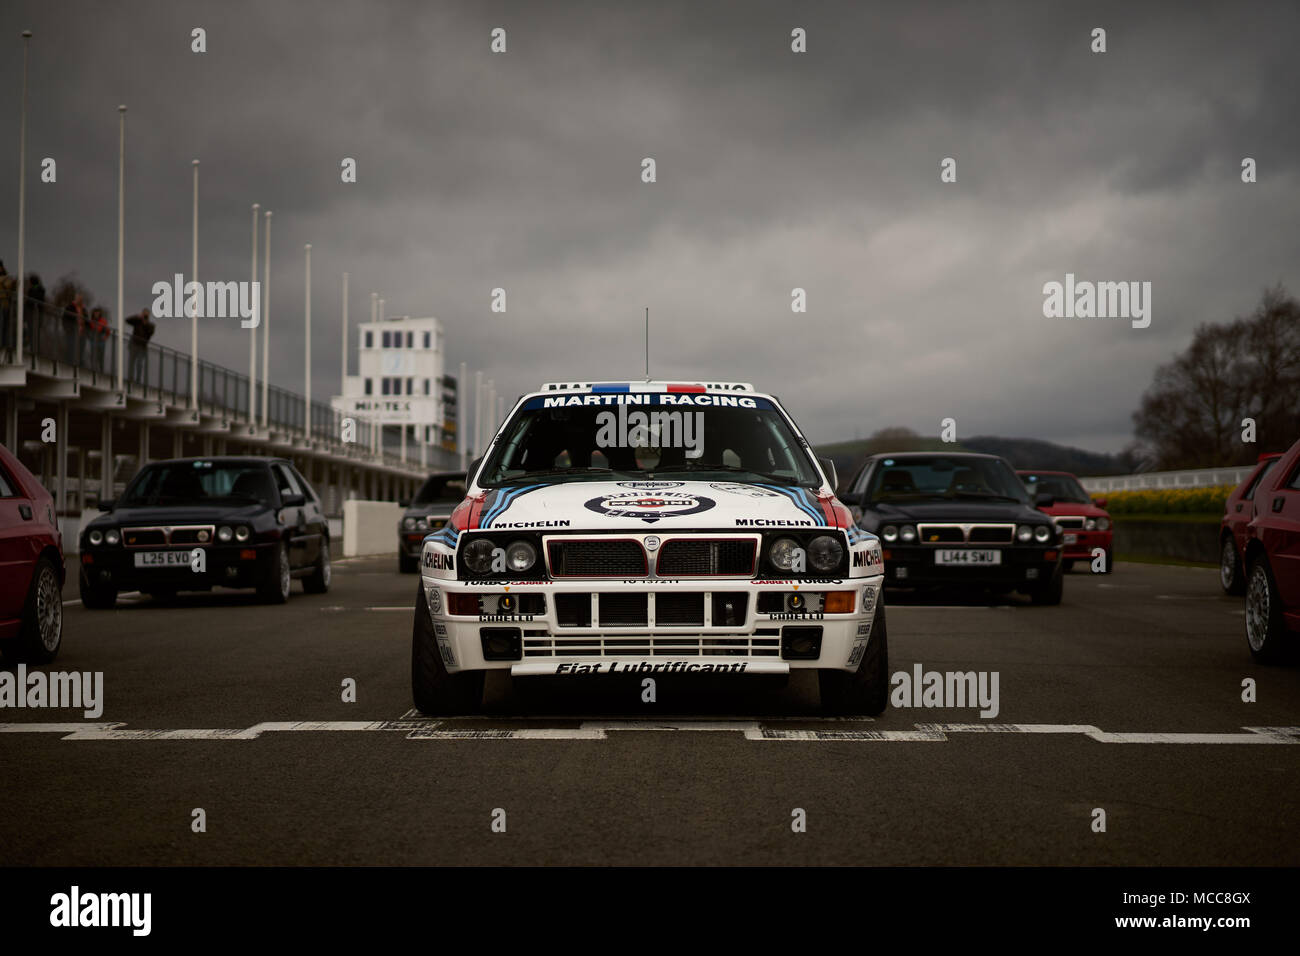 Lancia Martini Delta Integrale HF, Goodwood Motor Circuit, UK - Stock Image